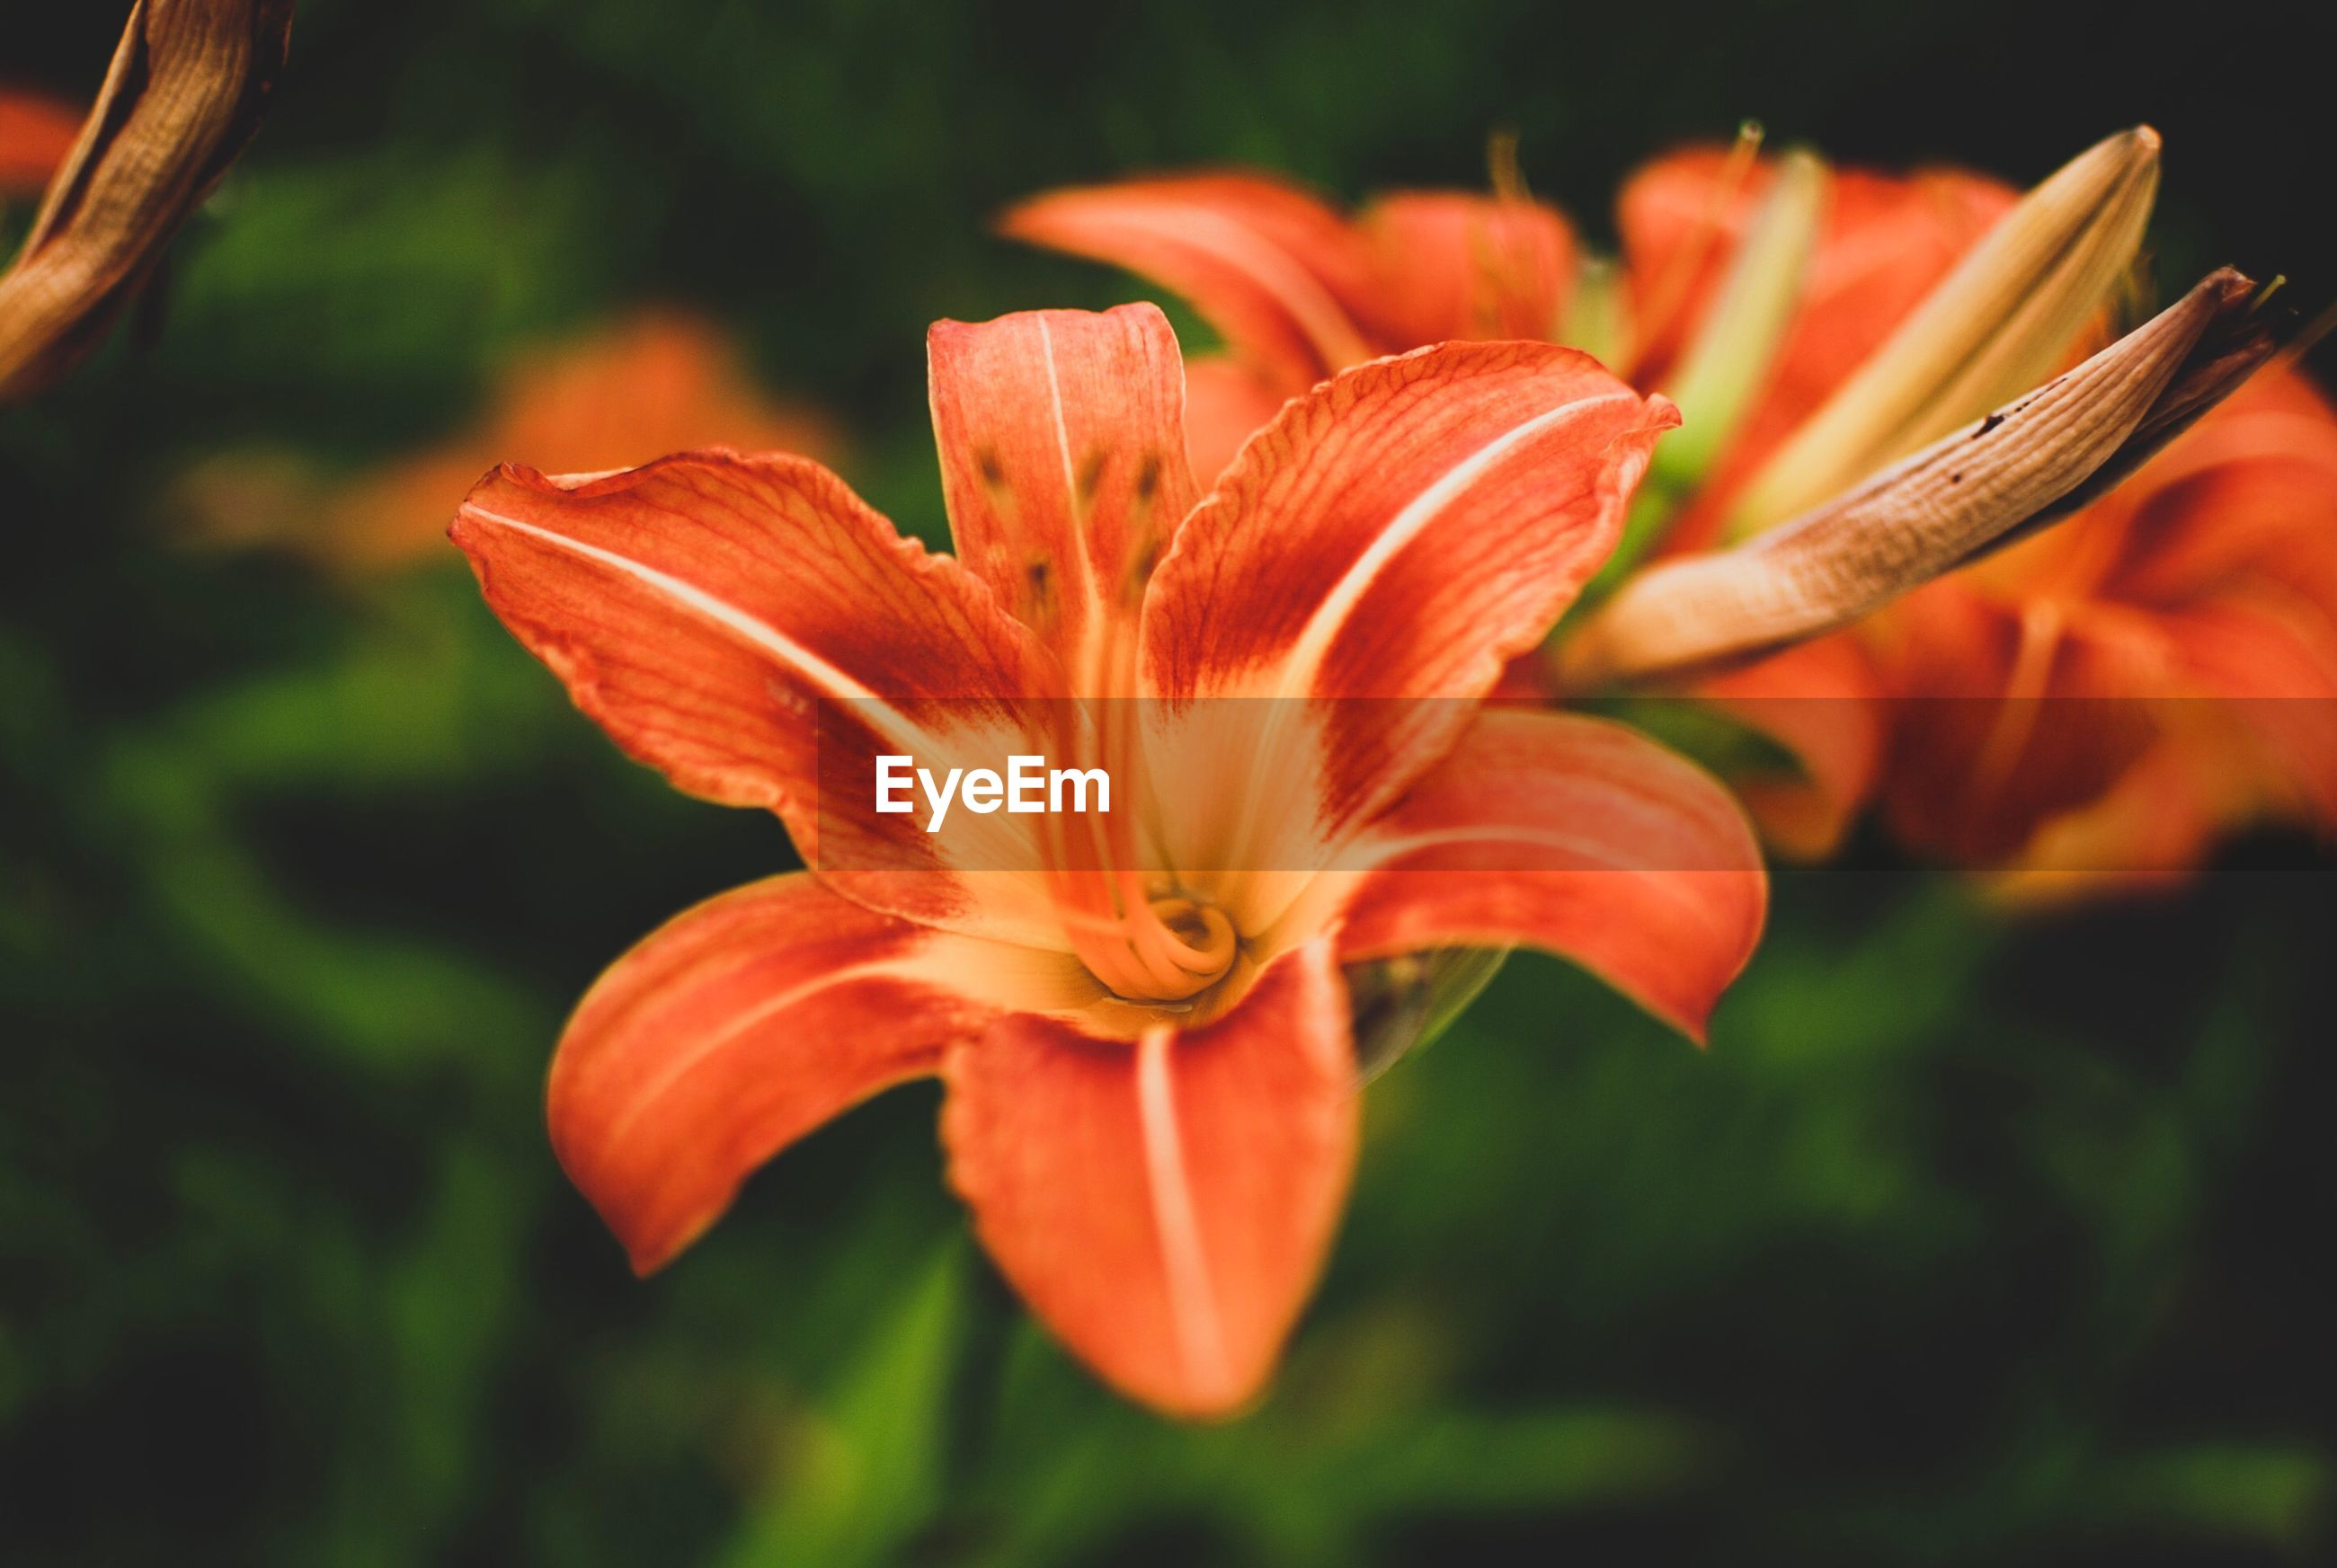 CLOSE-UP OF ORANGE LILY OF FLOWER